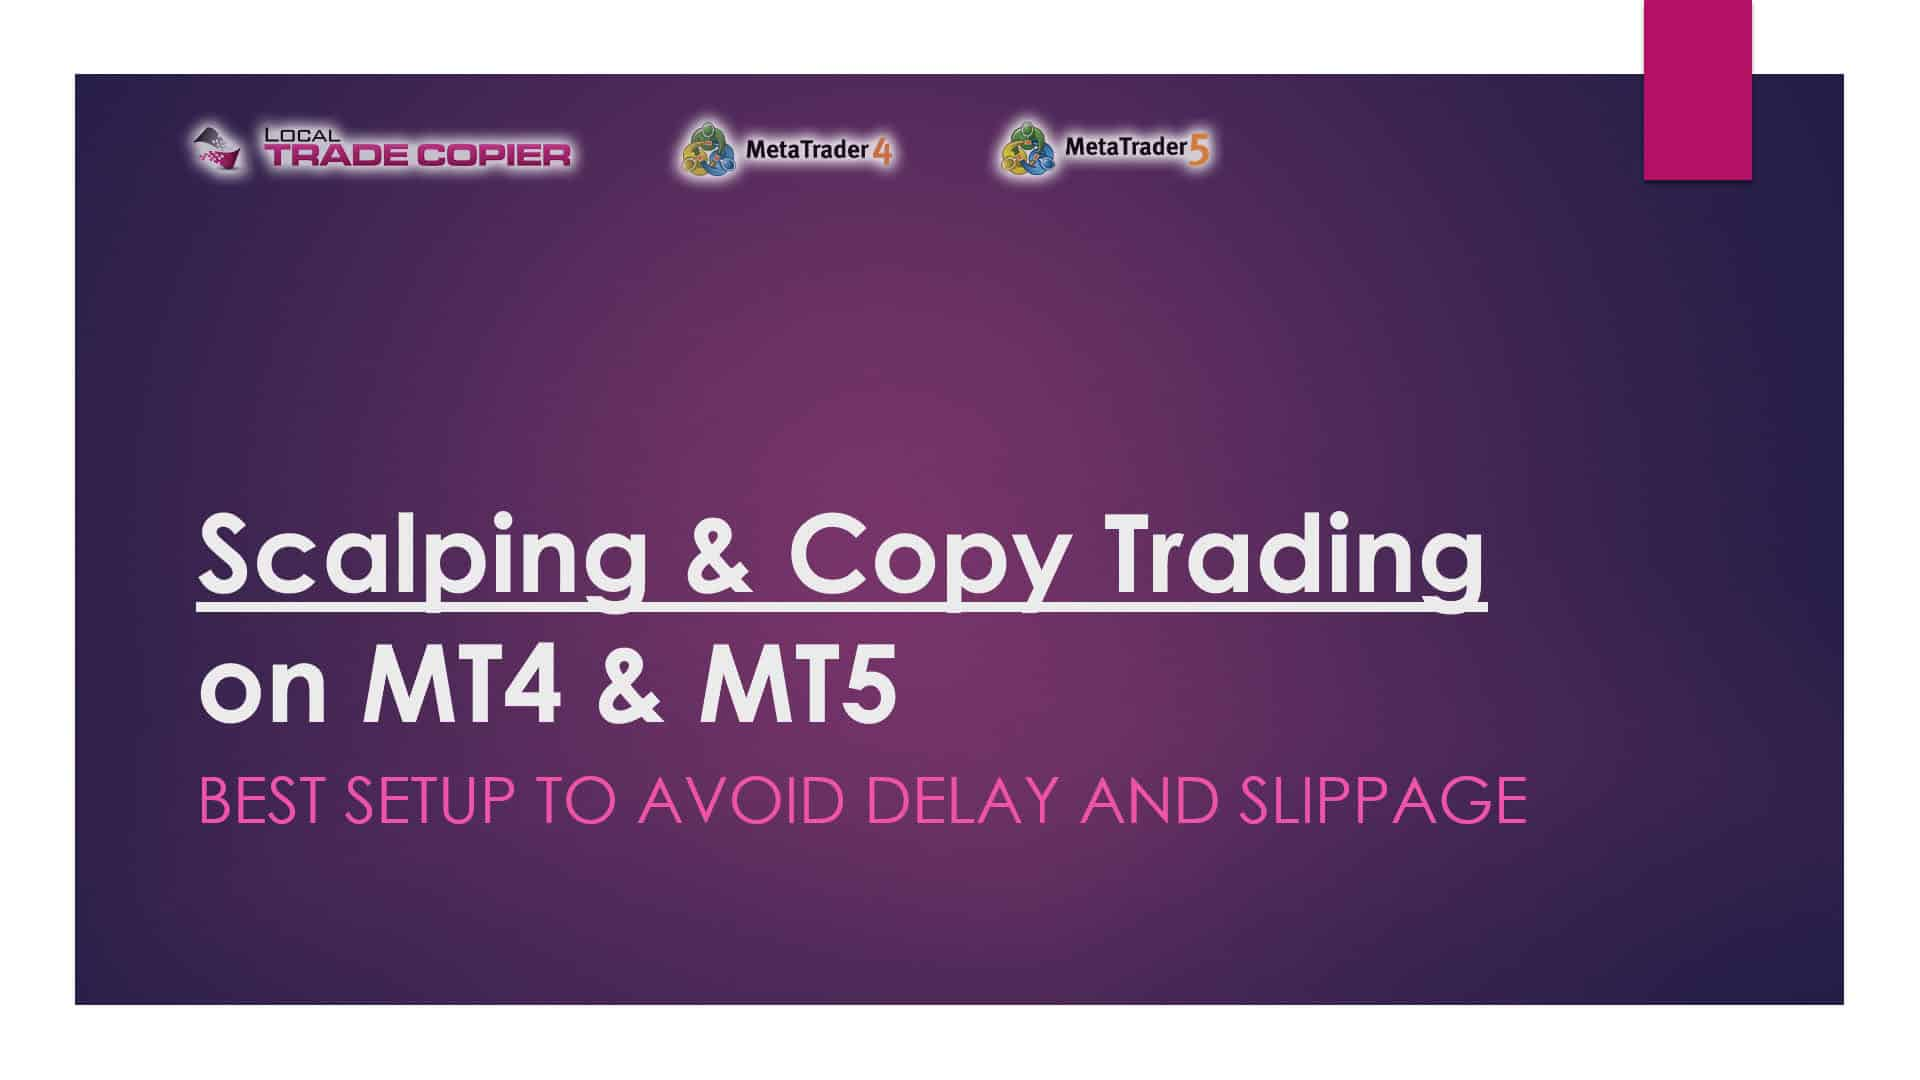 Scalping and Copy Trading on MT4 and MT5 (Best Setup to Avoid Delay and Slippage)